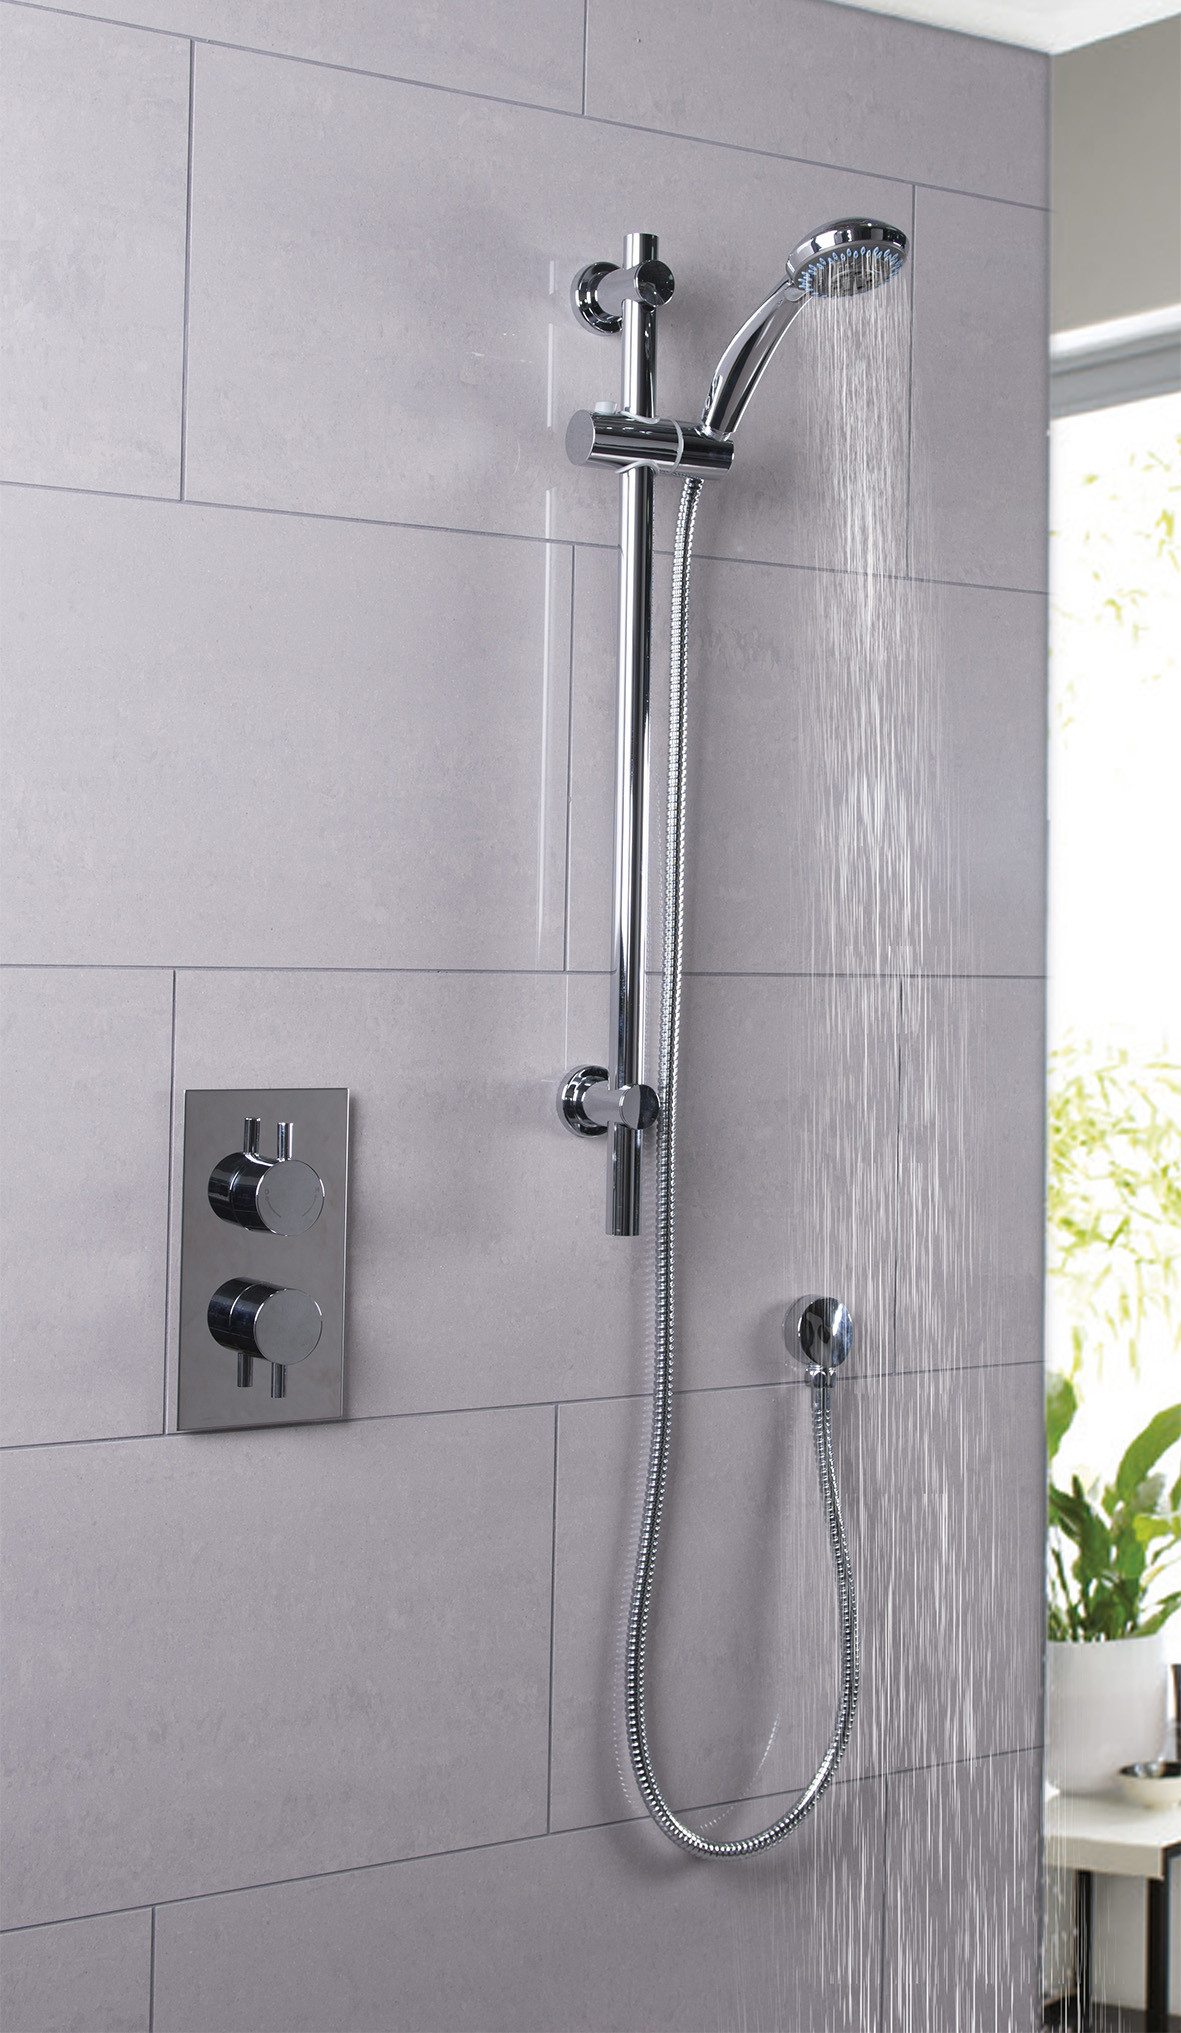 Circo Twin Thermostatic Valve With Clyde Slide Rail Kit & Round Shower Elbow